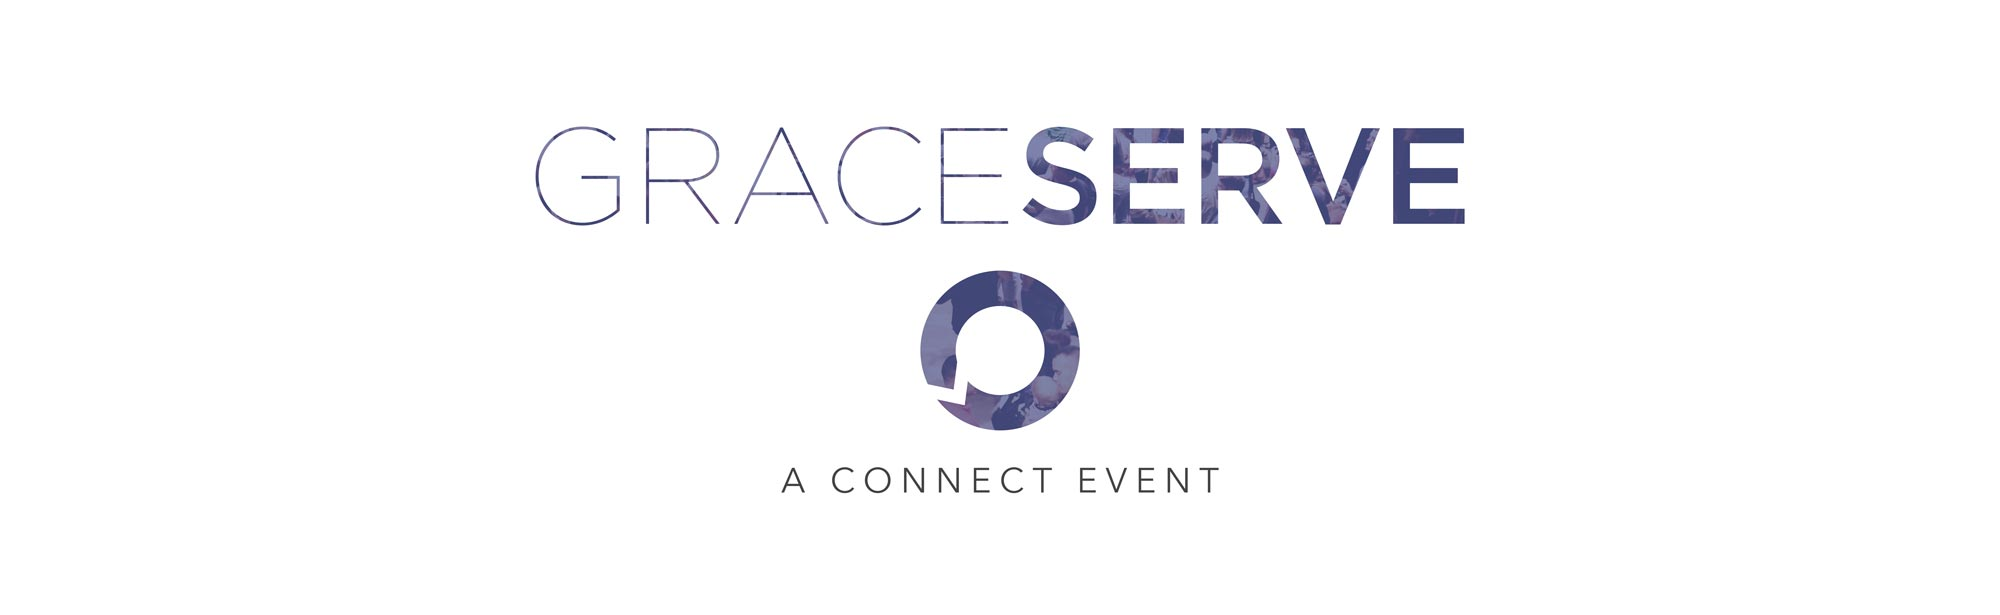 Grace Serve Logo - Grace Community Church